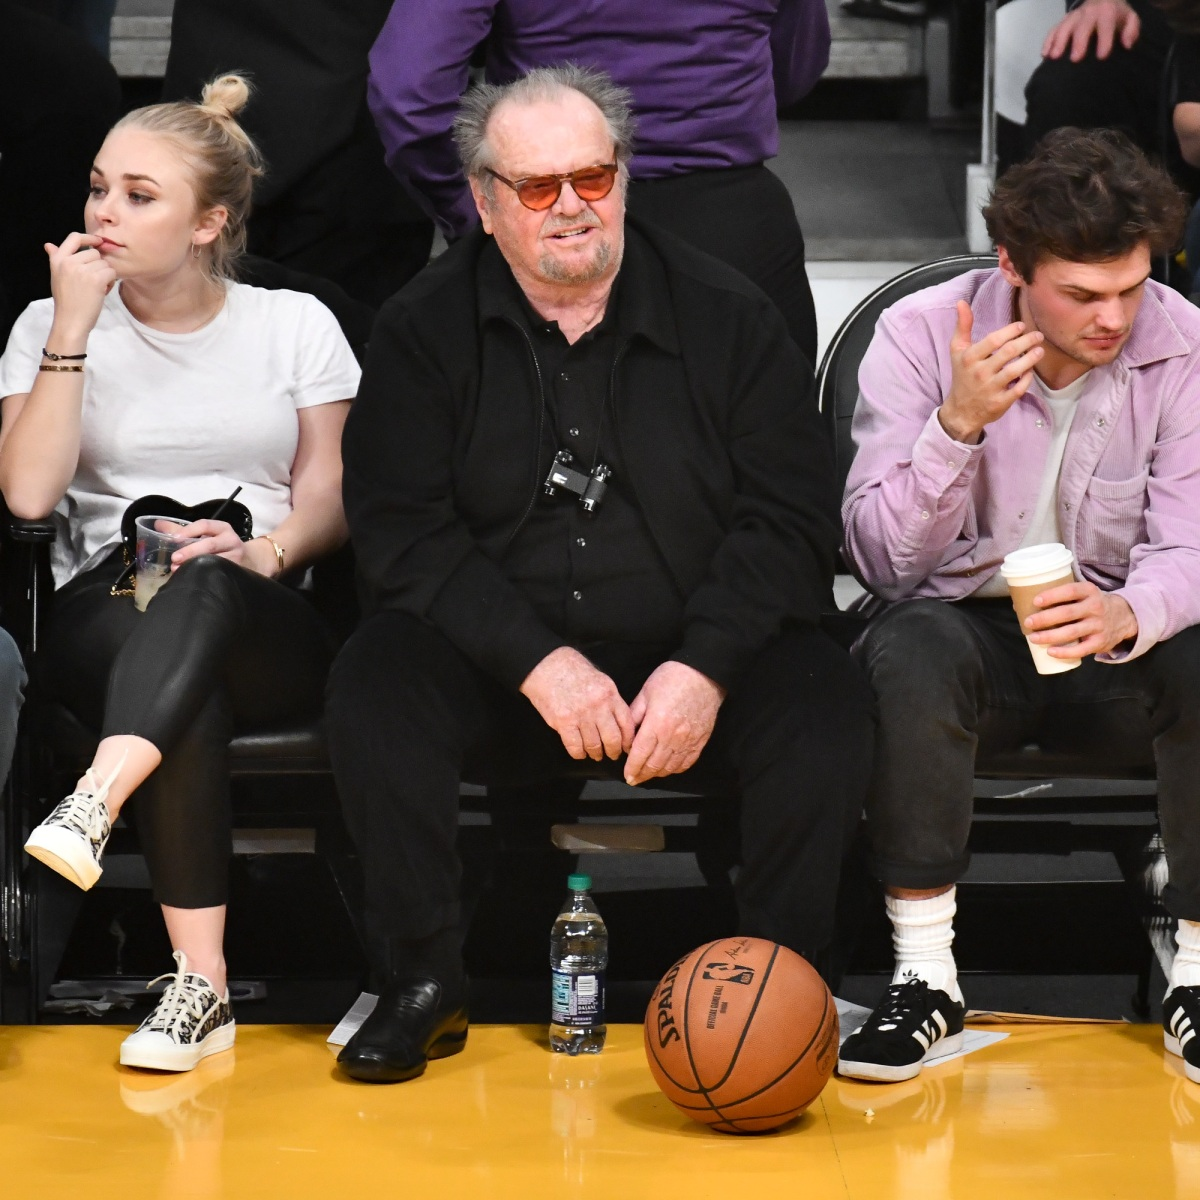 Jack Nicholson Makes Rare Public Appearance With Son Ray At Game Rob schneider, david spade, jon heder, jon lovitz, craig kilborn, molly sims, tim meadows, nick swardson. https www closerweekly com posts jack nicholson makes rare public appearance with son ray at game